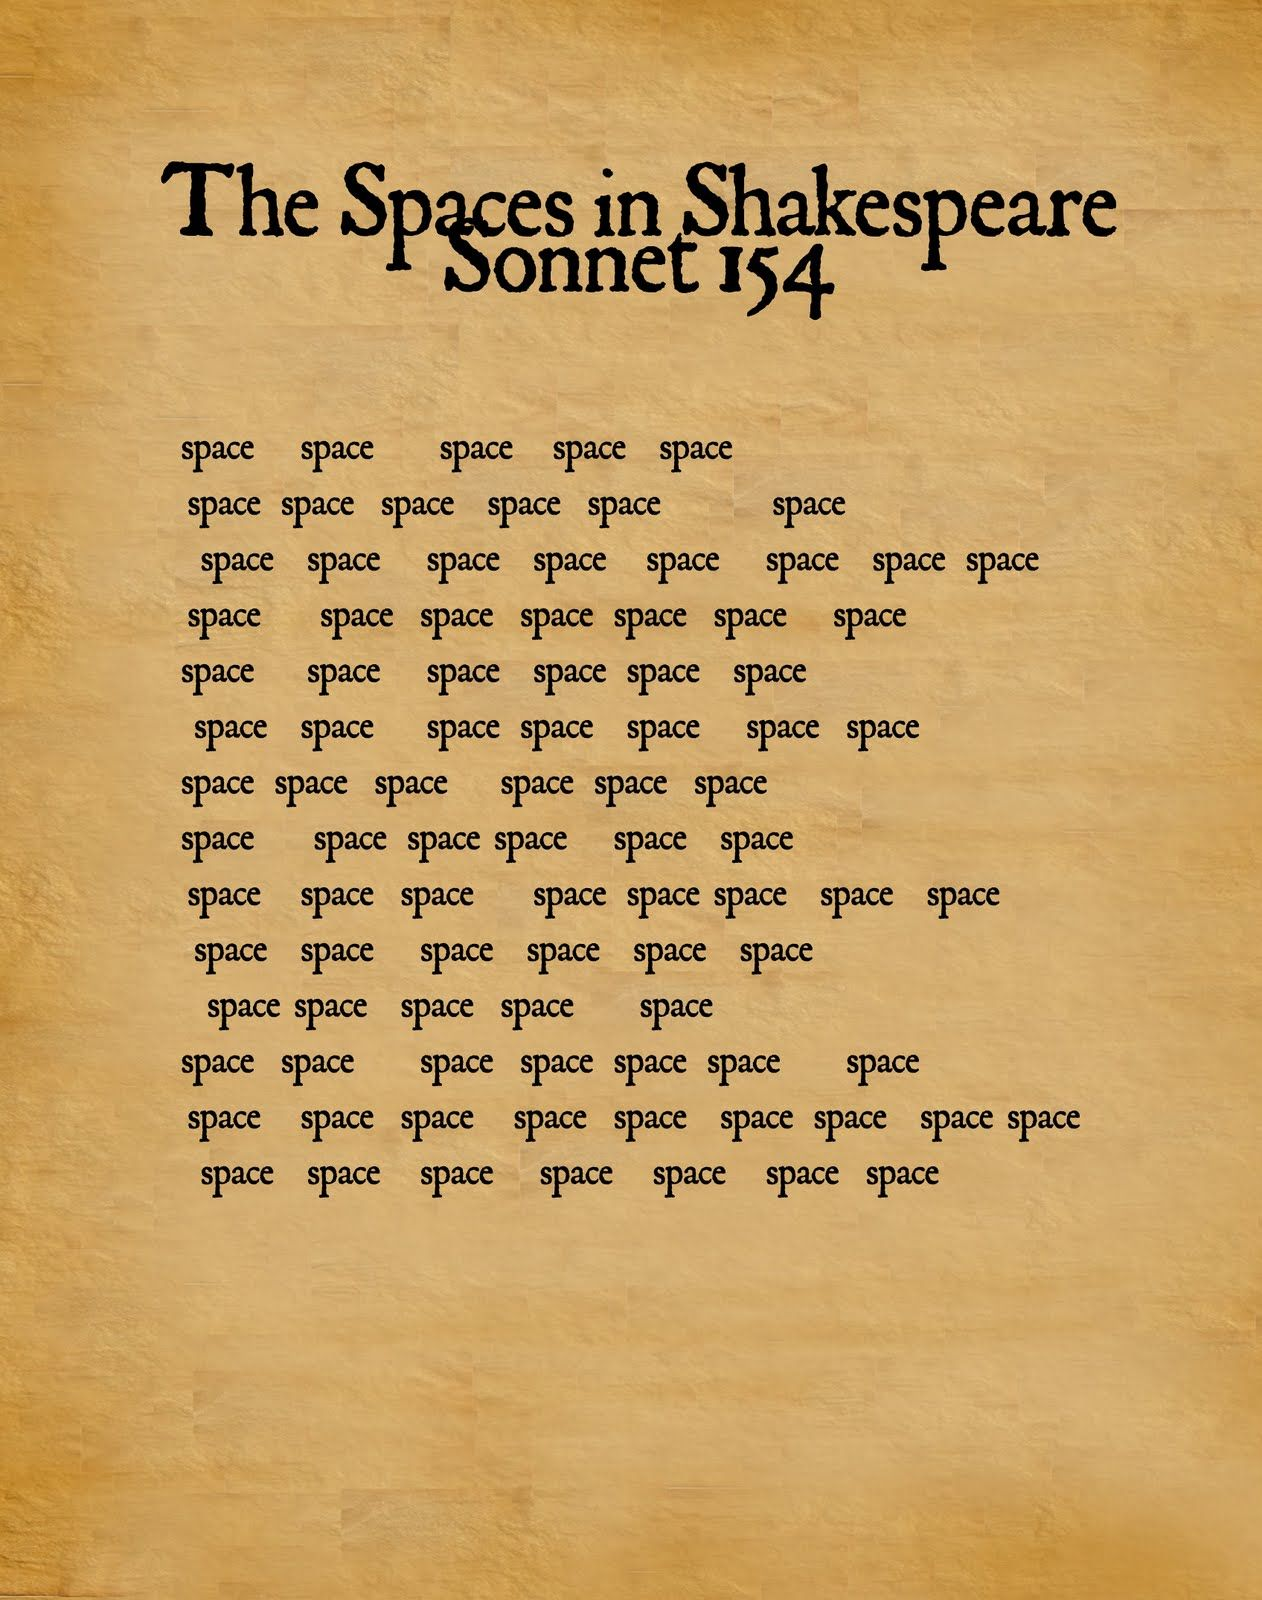 I Found Thi Image Which Feel Exemplifie The Rhythm Of Sonnet In A Unique And Interesting Way Unfortunately Shakespeare Meaning 61